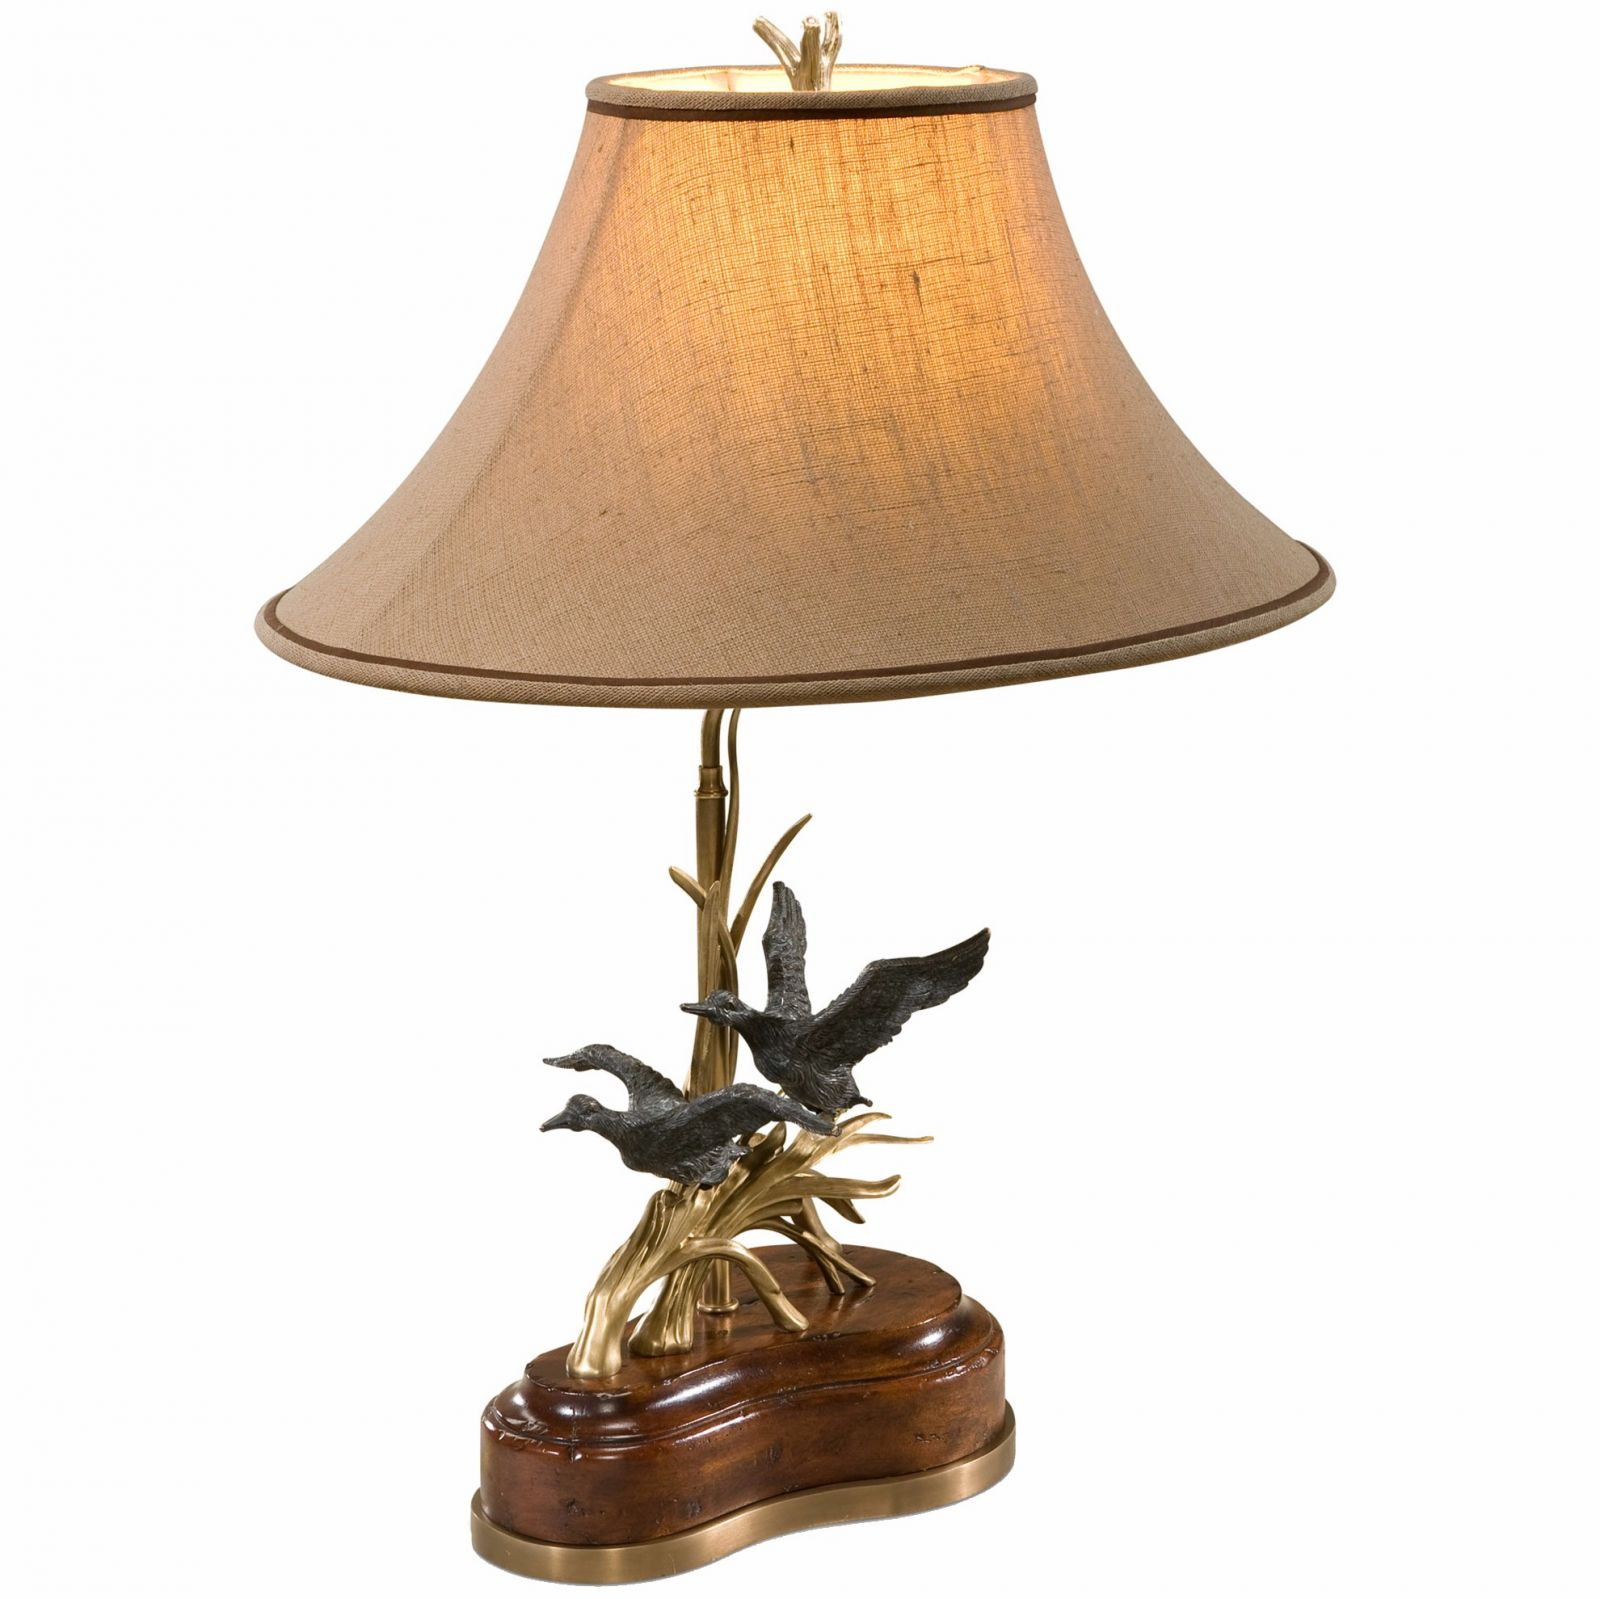 A finely cast brass and mahogany table lamp